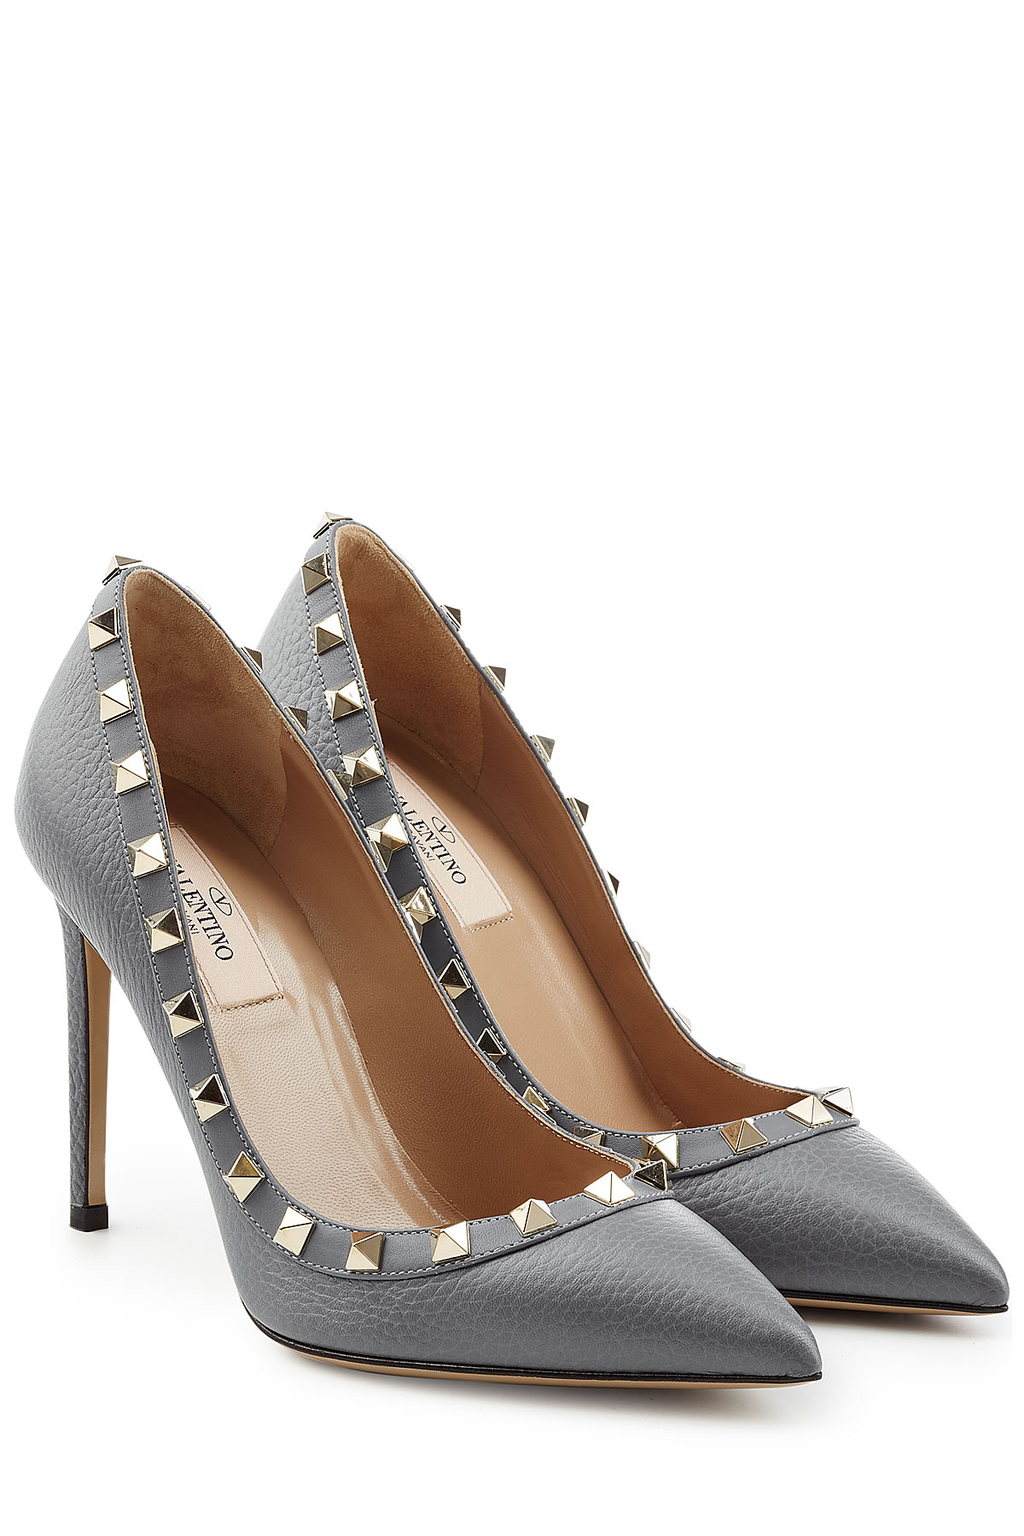 Rockstud Leather Pumps - predominant colour: light grey; occasions: evening, occasion; material: leather; heel height: high; embellishment: studs; heel: stiletto; toe: pointed toe; style: courts; finish: plain; pattern: plain; season: s/s 2016; wardrobe: event